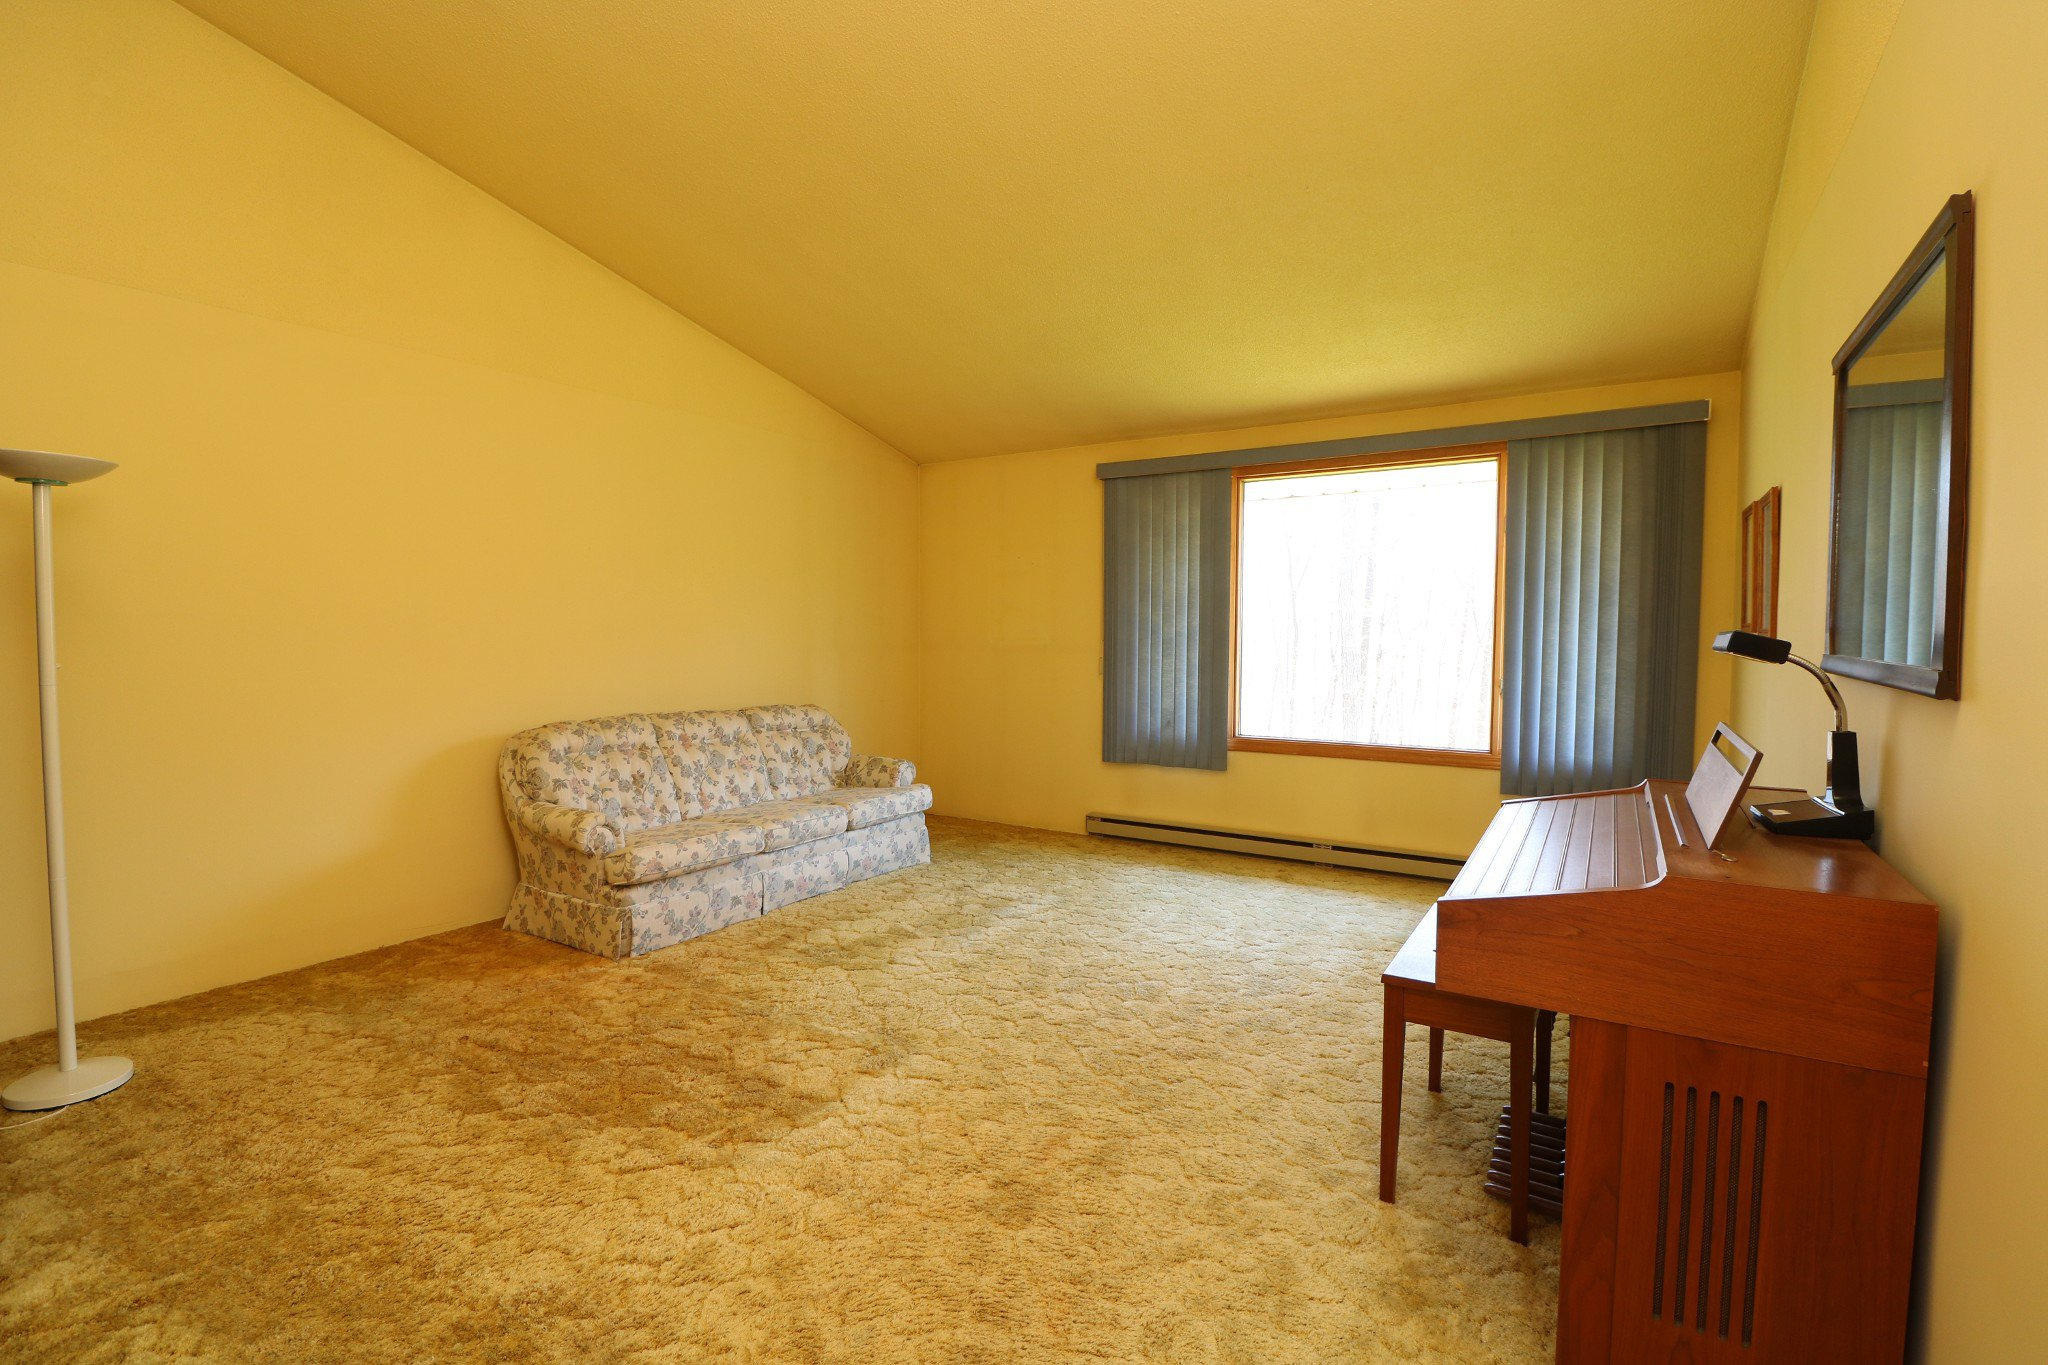 Photo 5: Photos: 37 Halstead Drive in Roseneath: Residential Detached for sale : MLS®# 192863